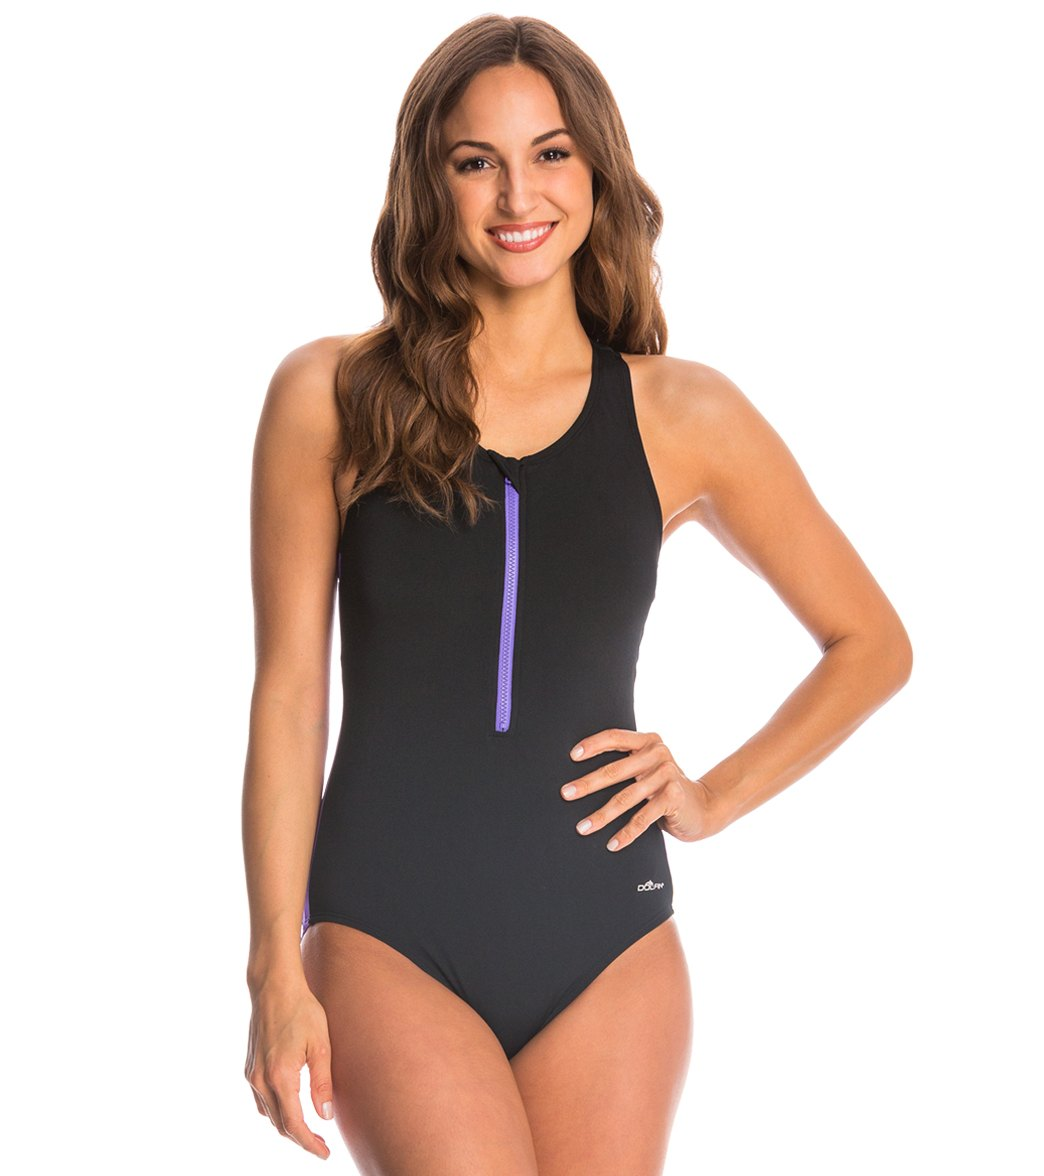 Dolfin Aquashape Zip-Front Racerback One Piece Swimsuit at SwimOutlet.com -  Free Shipping